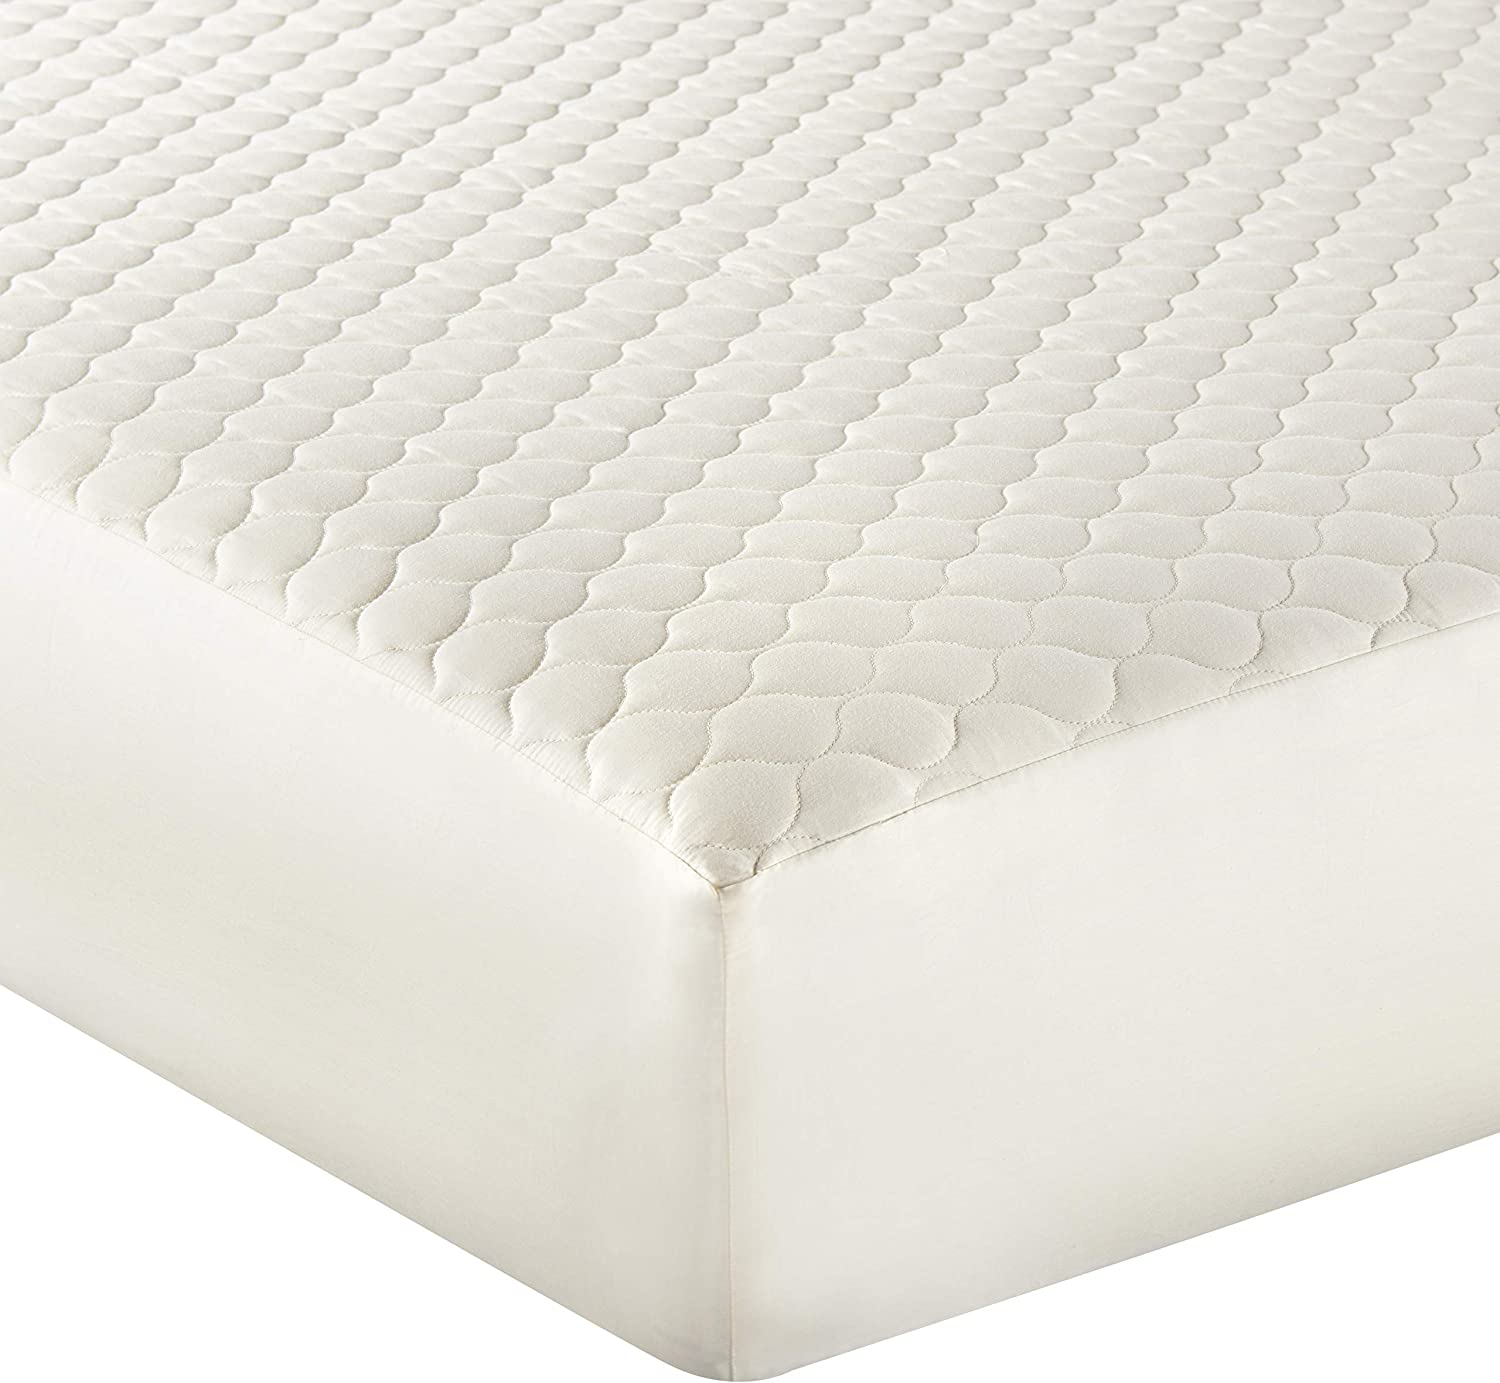 """Whisper Organics 100% Organic Cotton Quilted Mattress Cover, 17"""" Deep - GOTS Certified (King, Ivory)"""